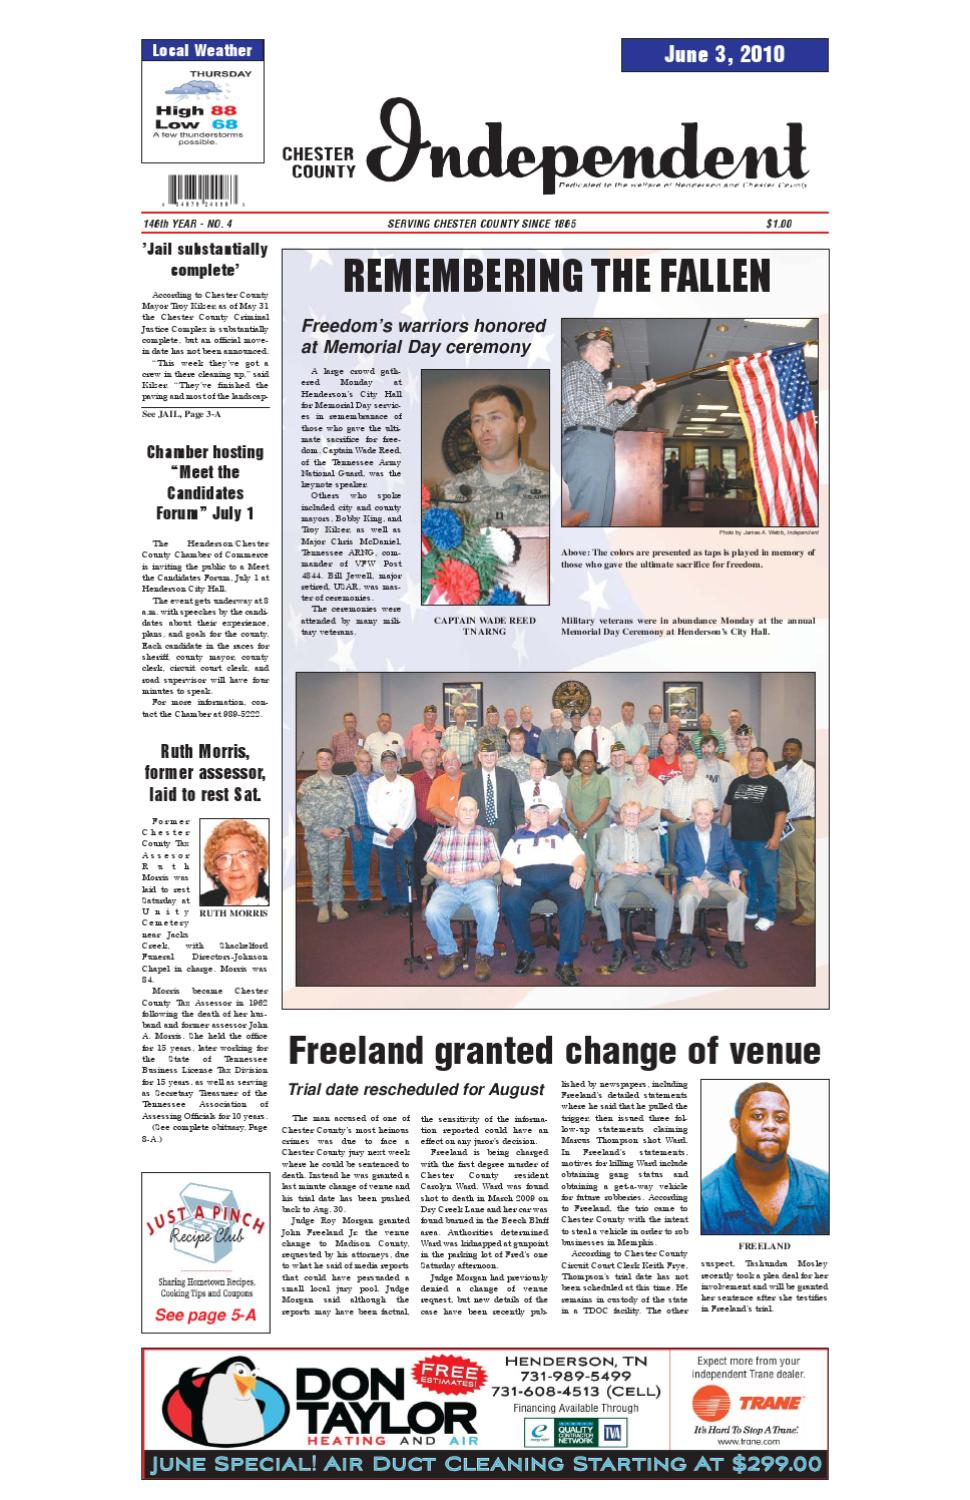 Tennessee chester county enville - Chester County Independent 06 03 2010 Issue By Chester County Independent Issuu